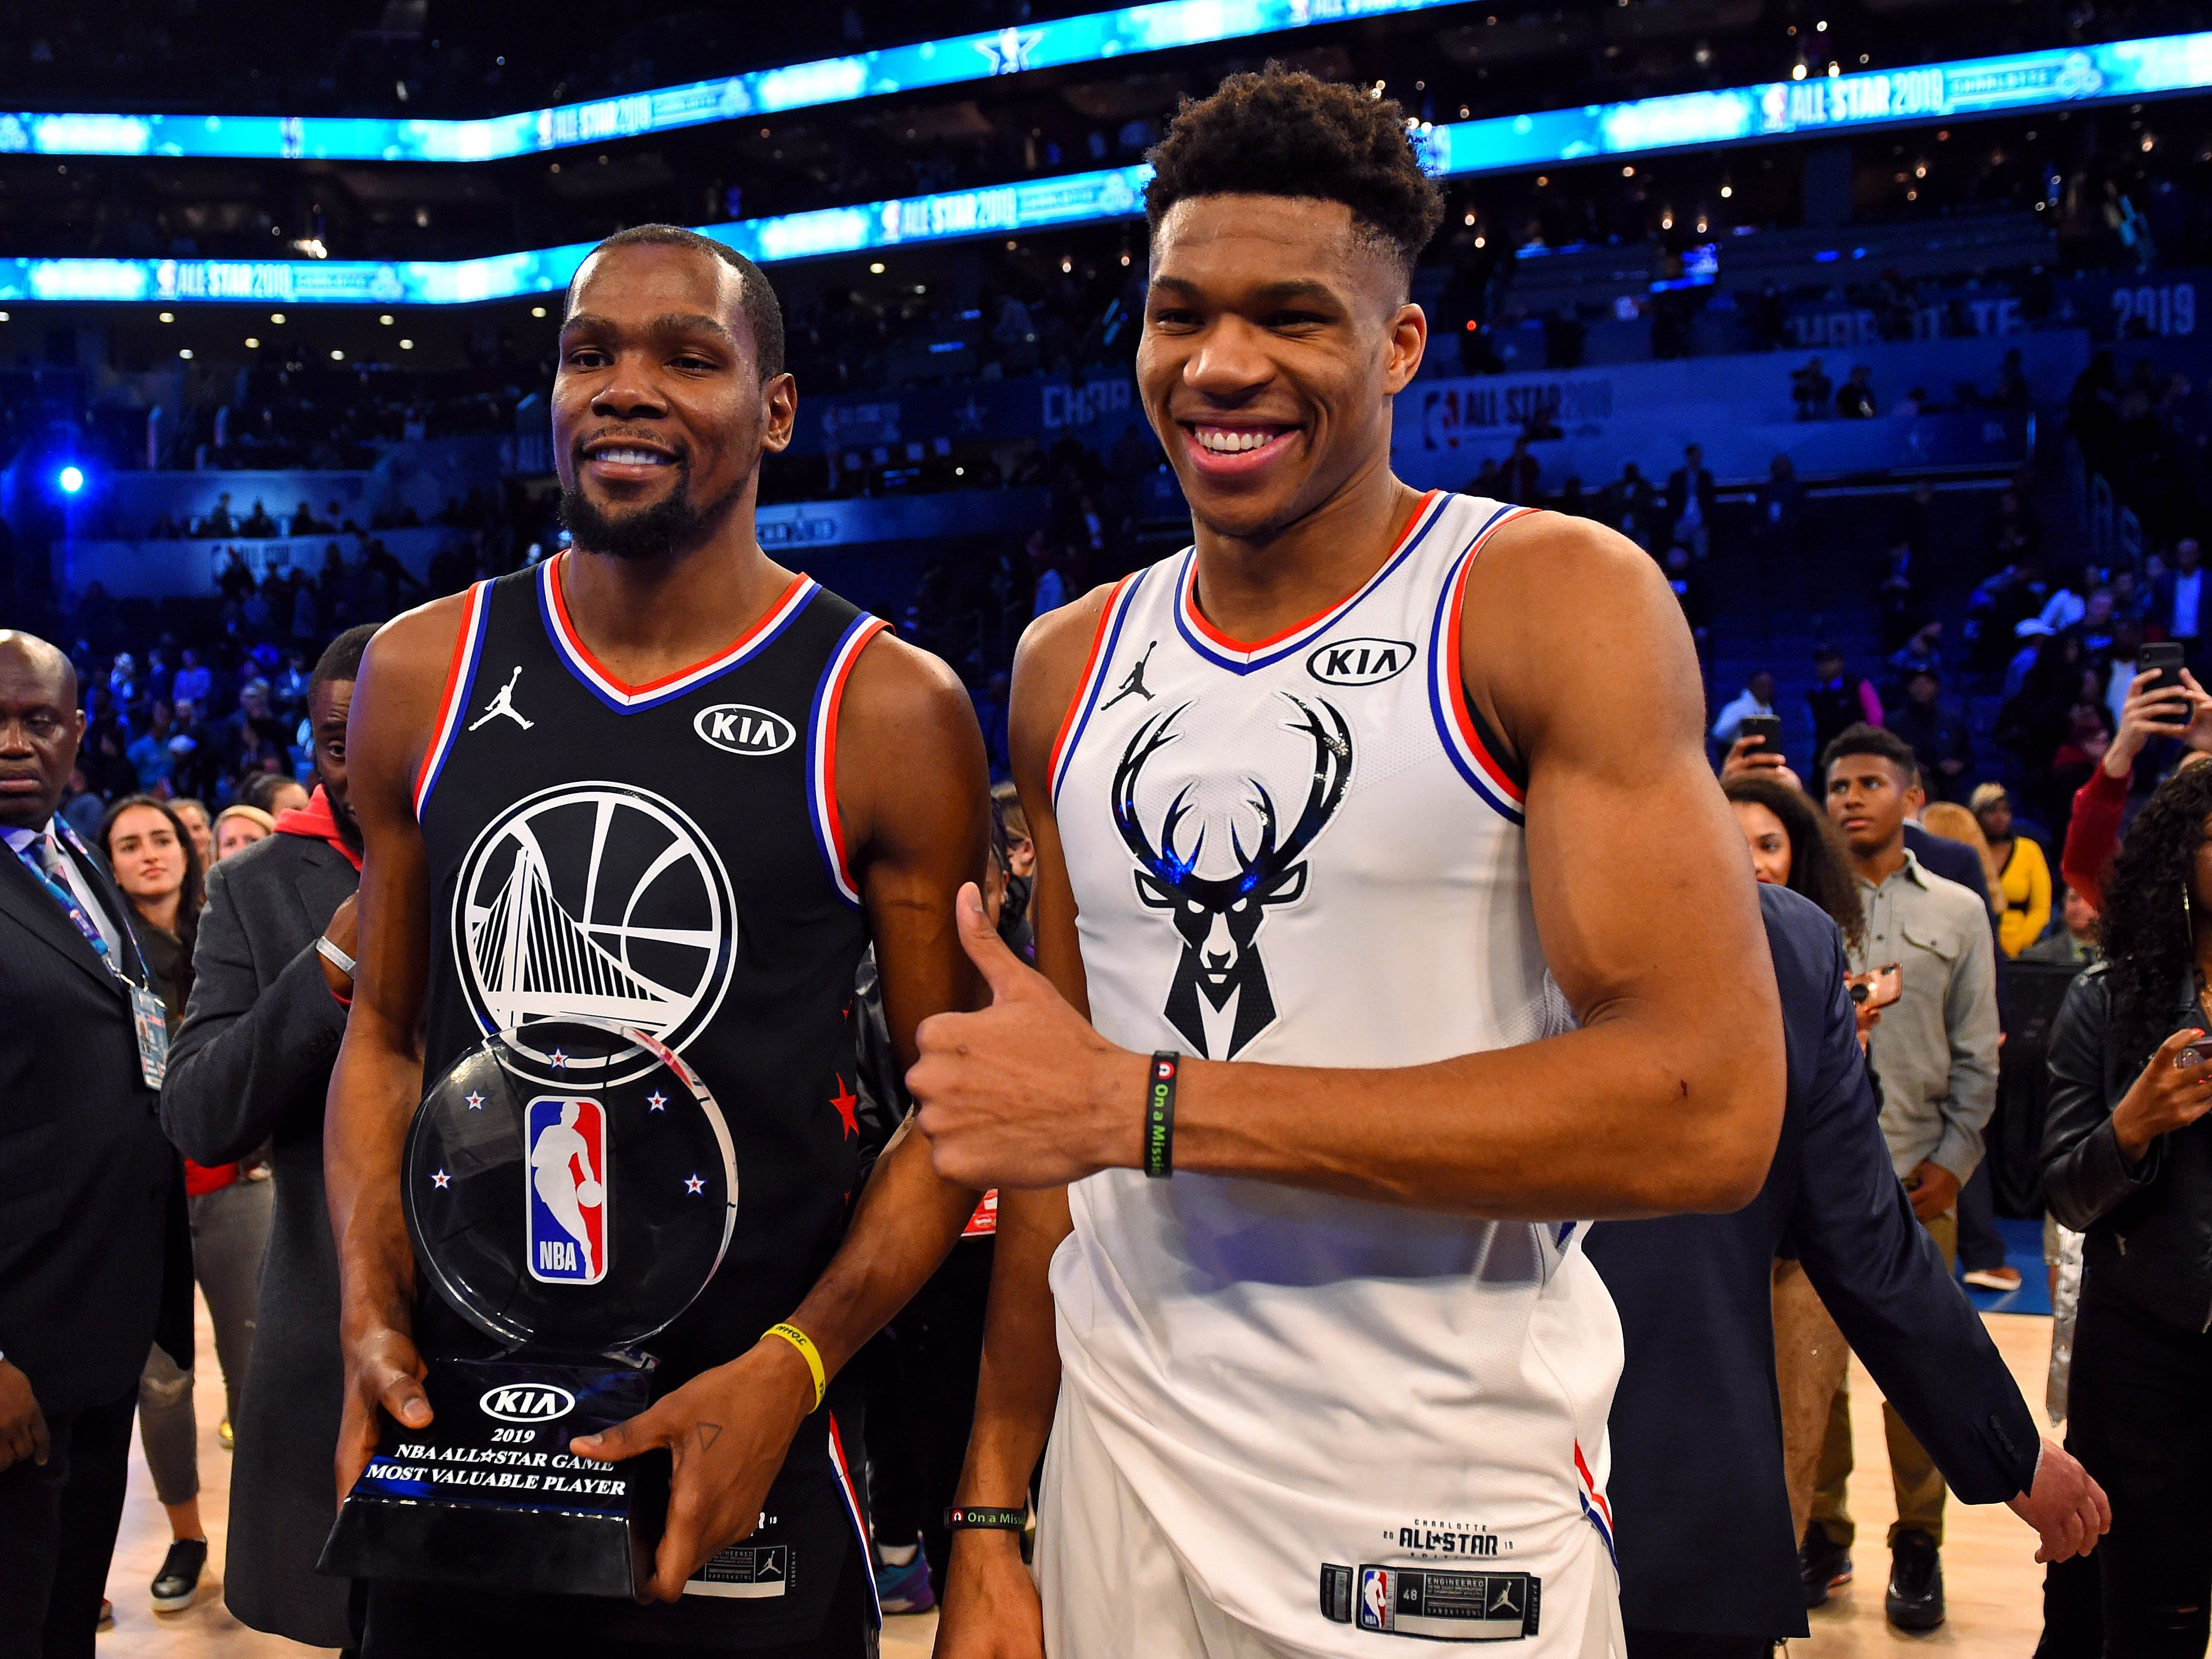 Kevin Durant and Giannis Antetokounmpo pose for a picture after the All-Star Game.